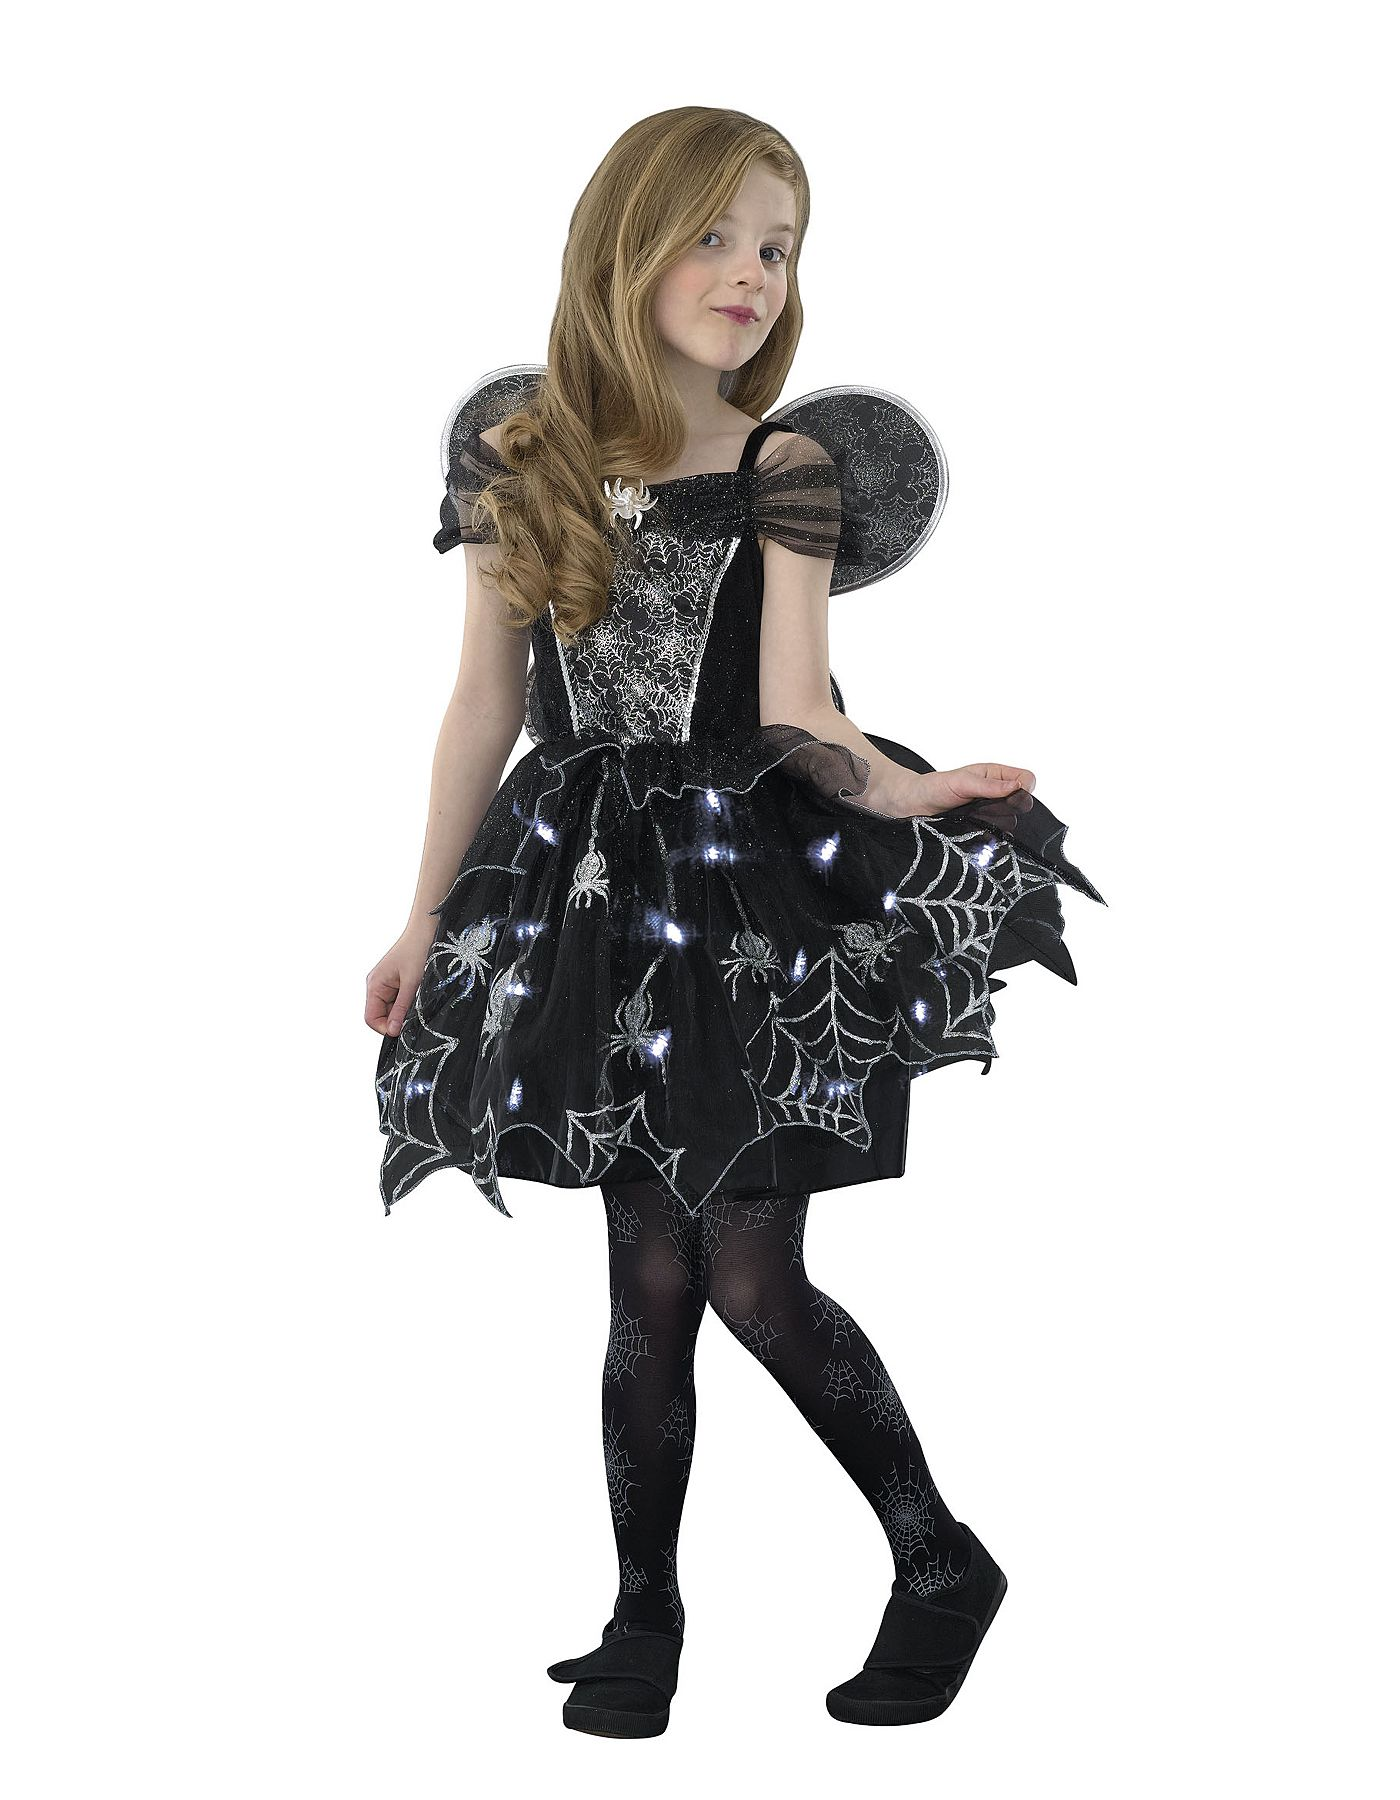 Light Up Witch Fancy Dress Costume | Girls | George at ASDA £10 ...